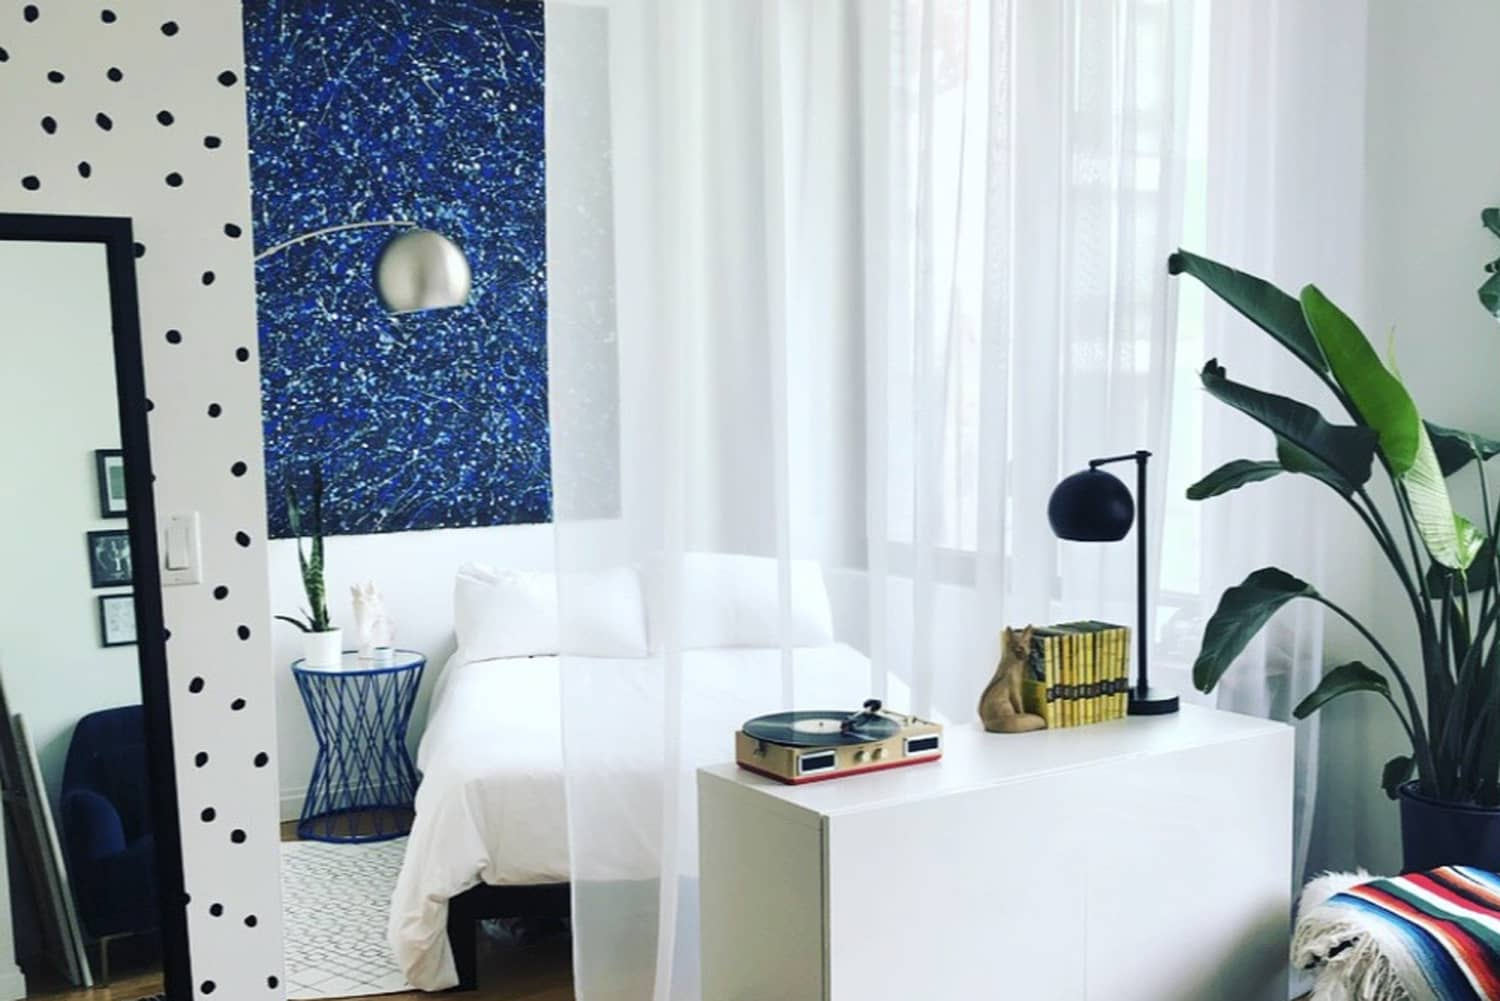 A 494-Square-Foot Studio Was Decorated on an Awesomely Small Budget